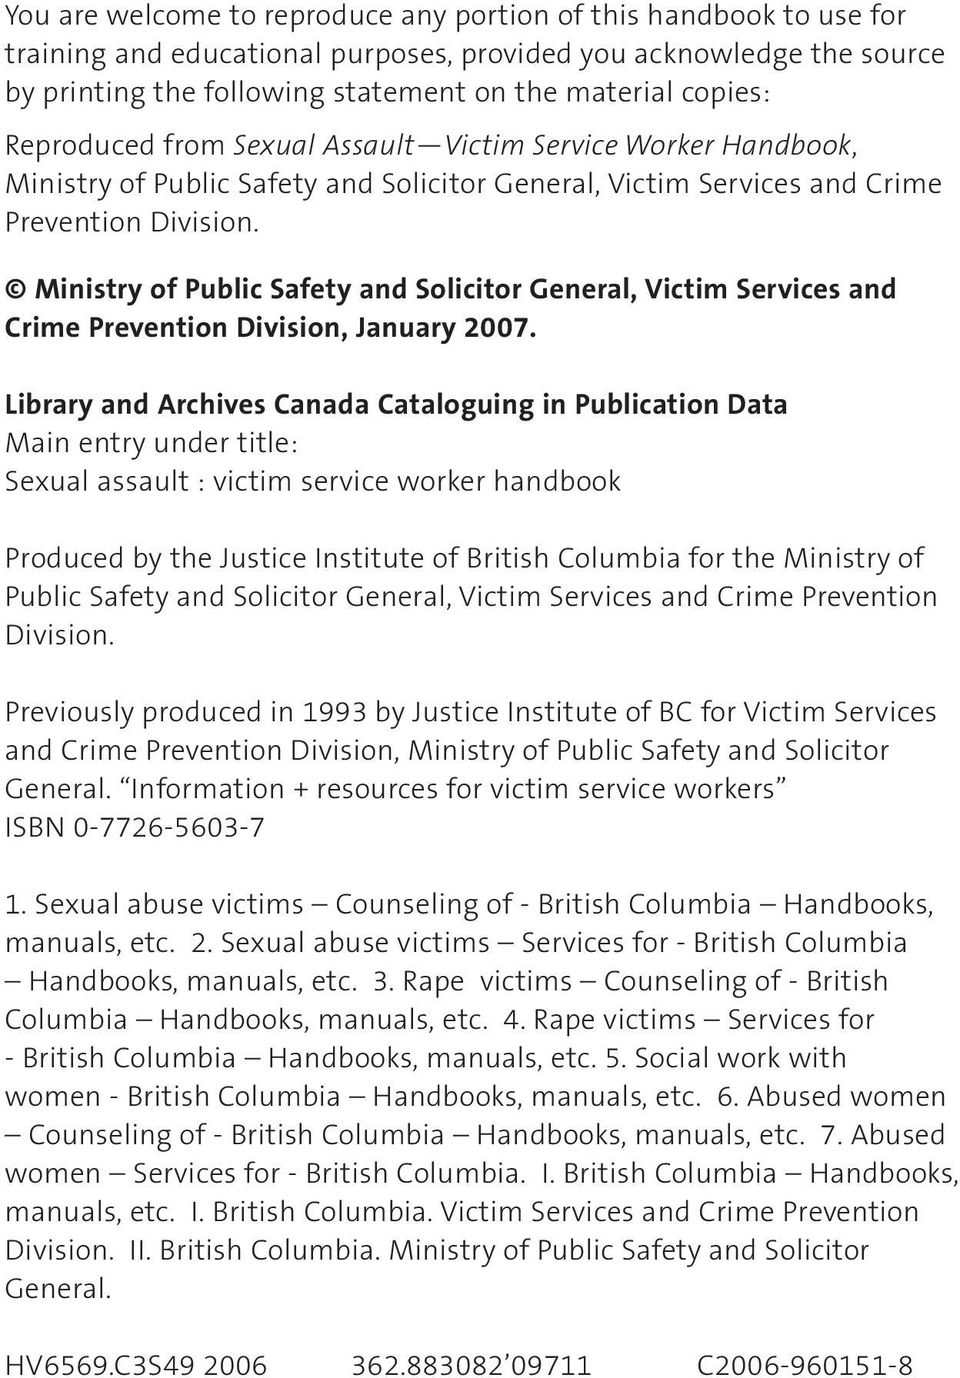 Ministry of Public Safety and Solicitor General, Victim Services and Crime Prevention Division, January 2007.